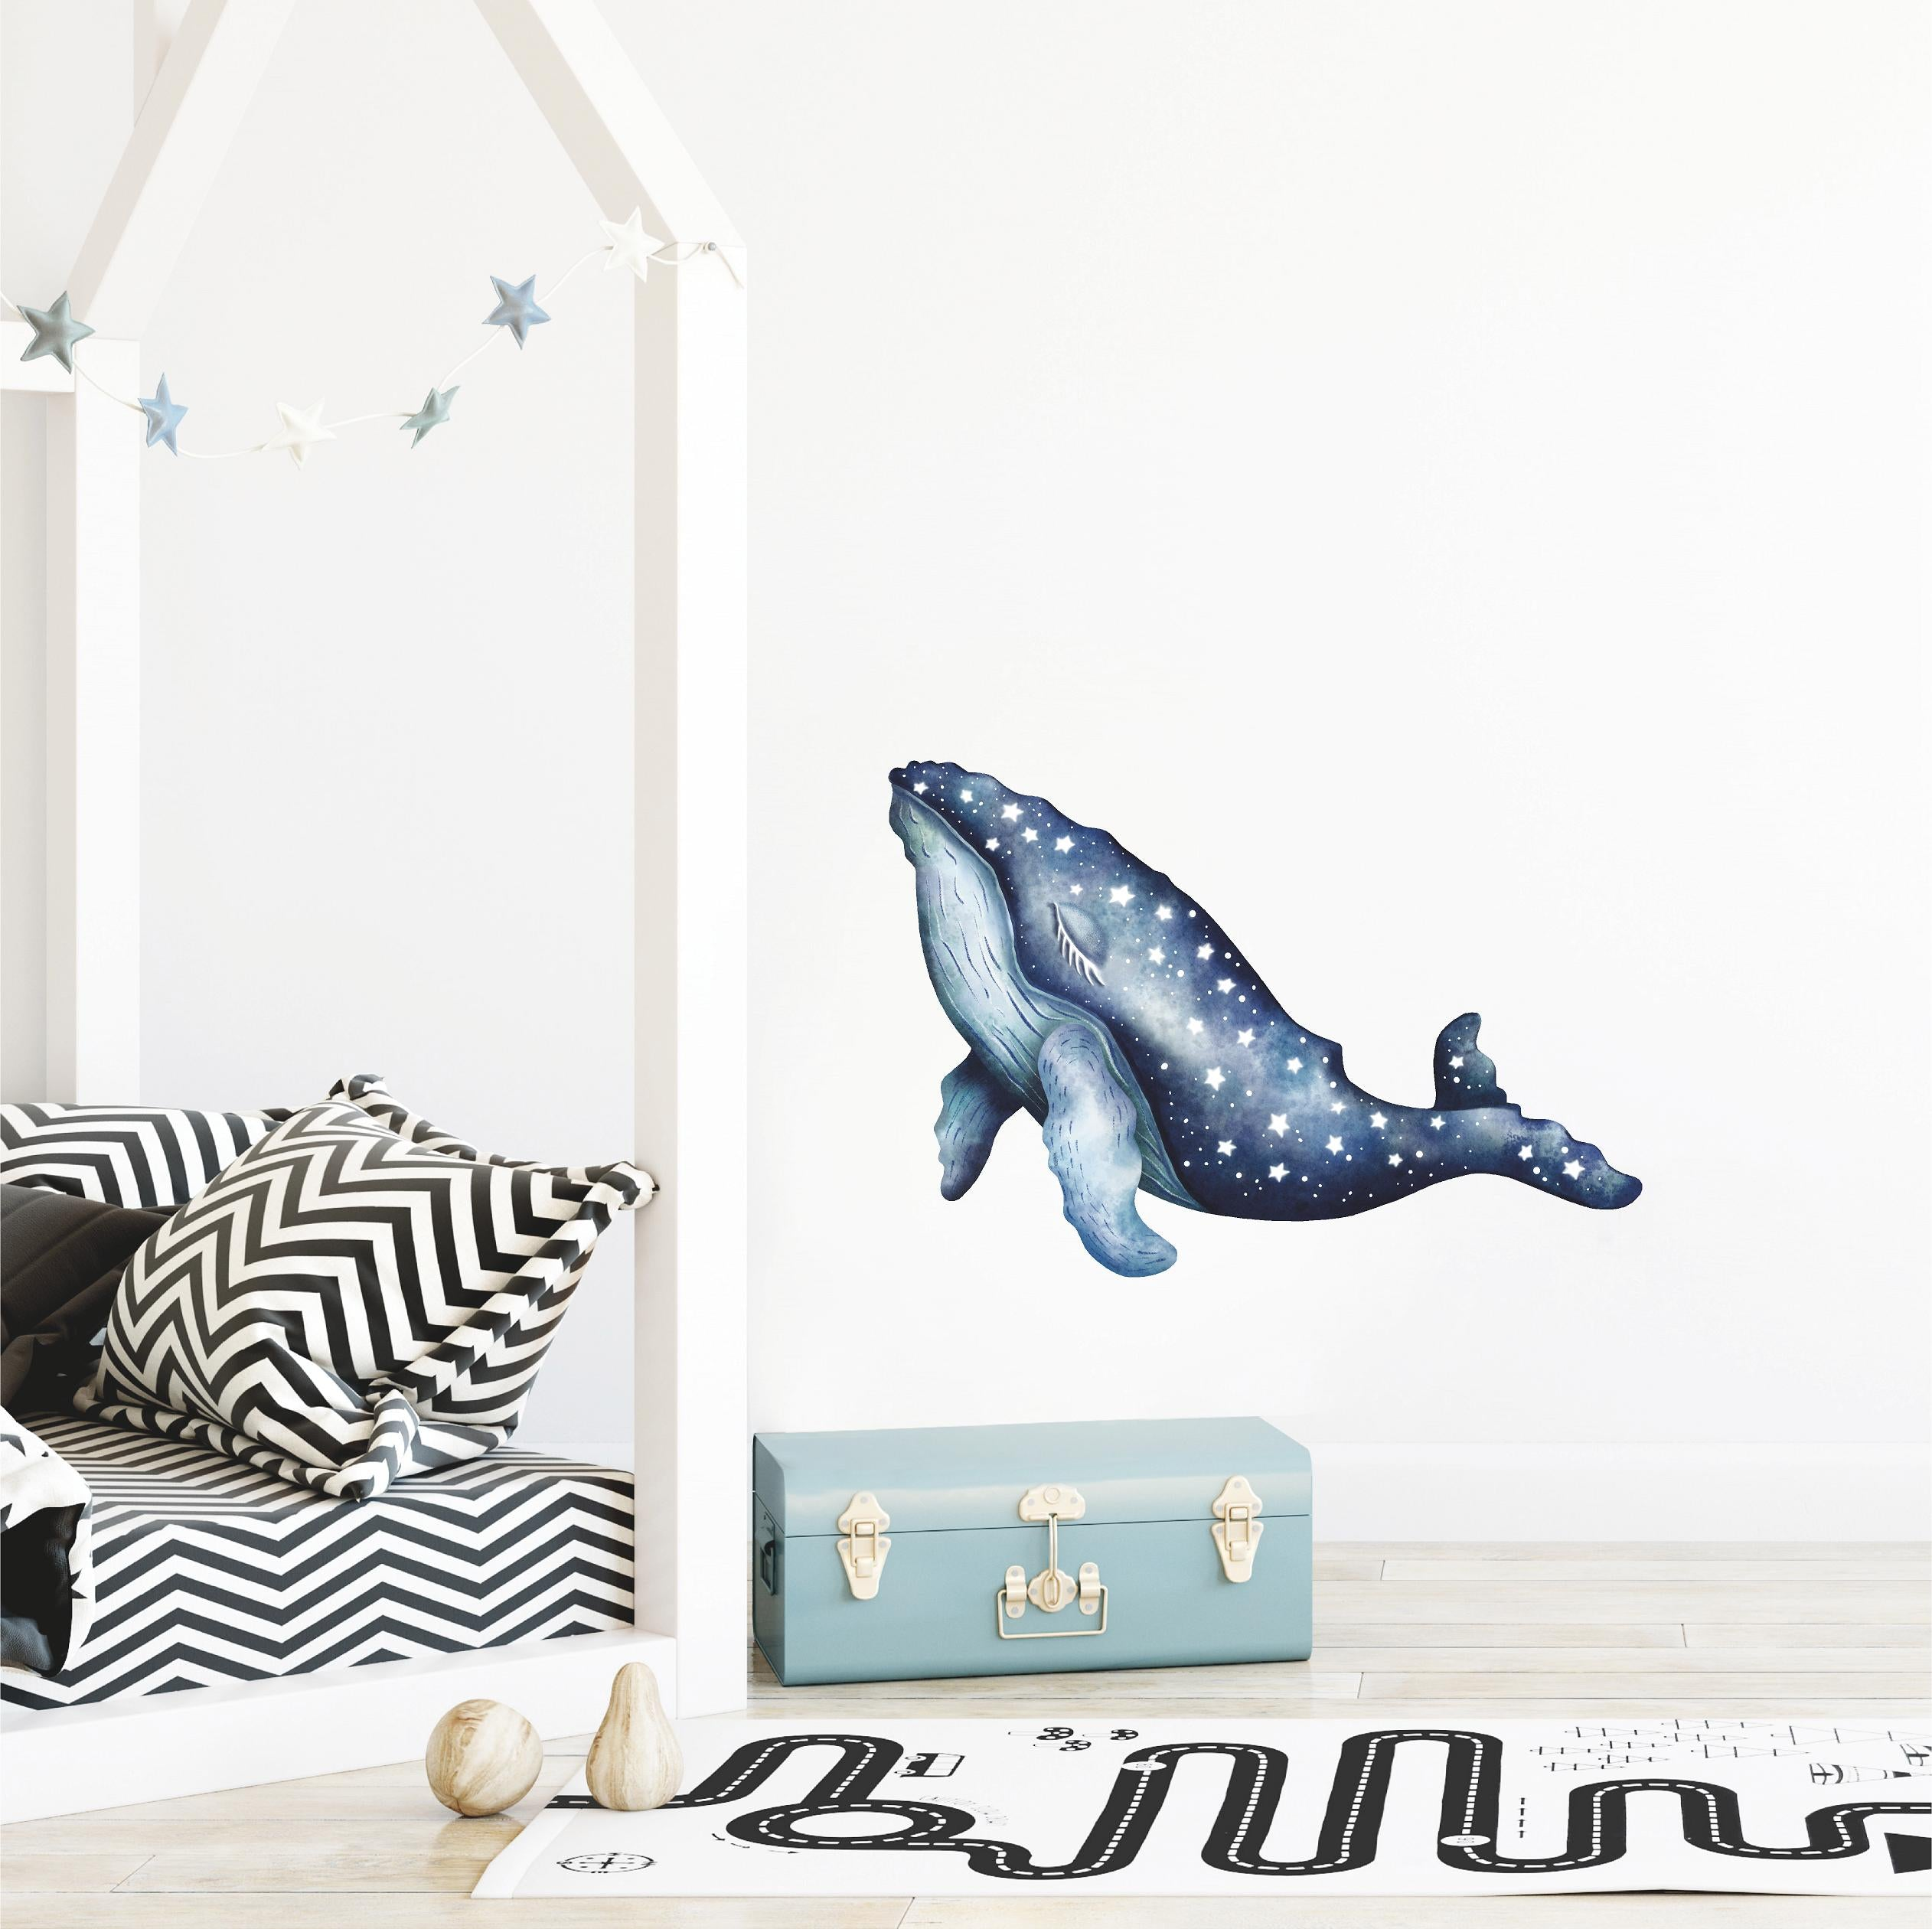 Sleepy Star Humpback Whale #1 Wall Decal Removable Fabric Vinyl Watercolor Ocean Sea Animal Wall Sticker | DecalBaby